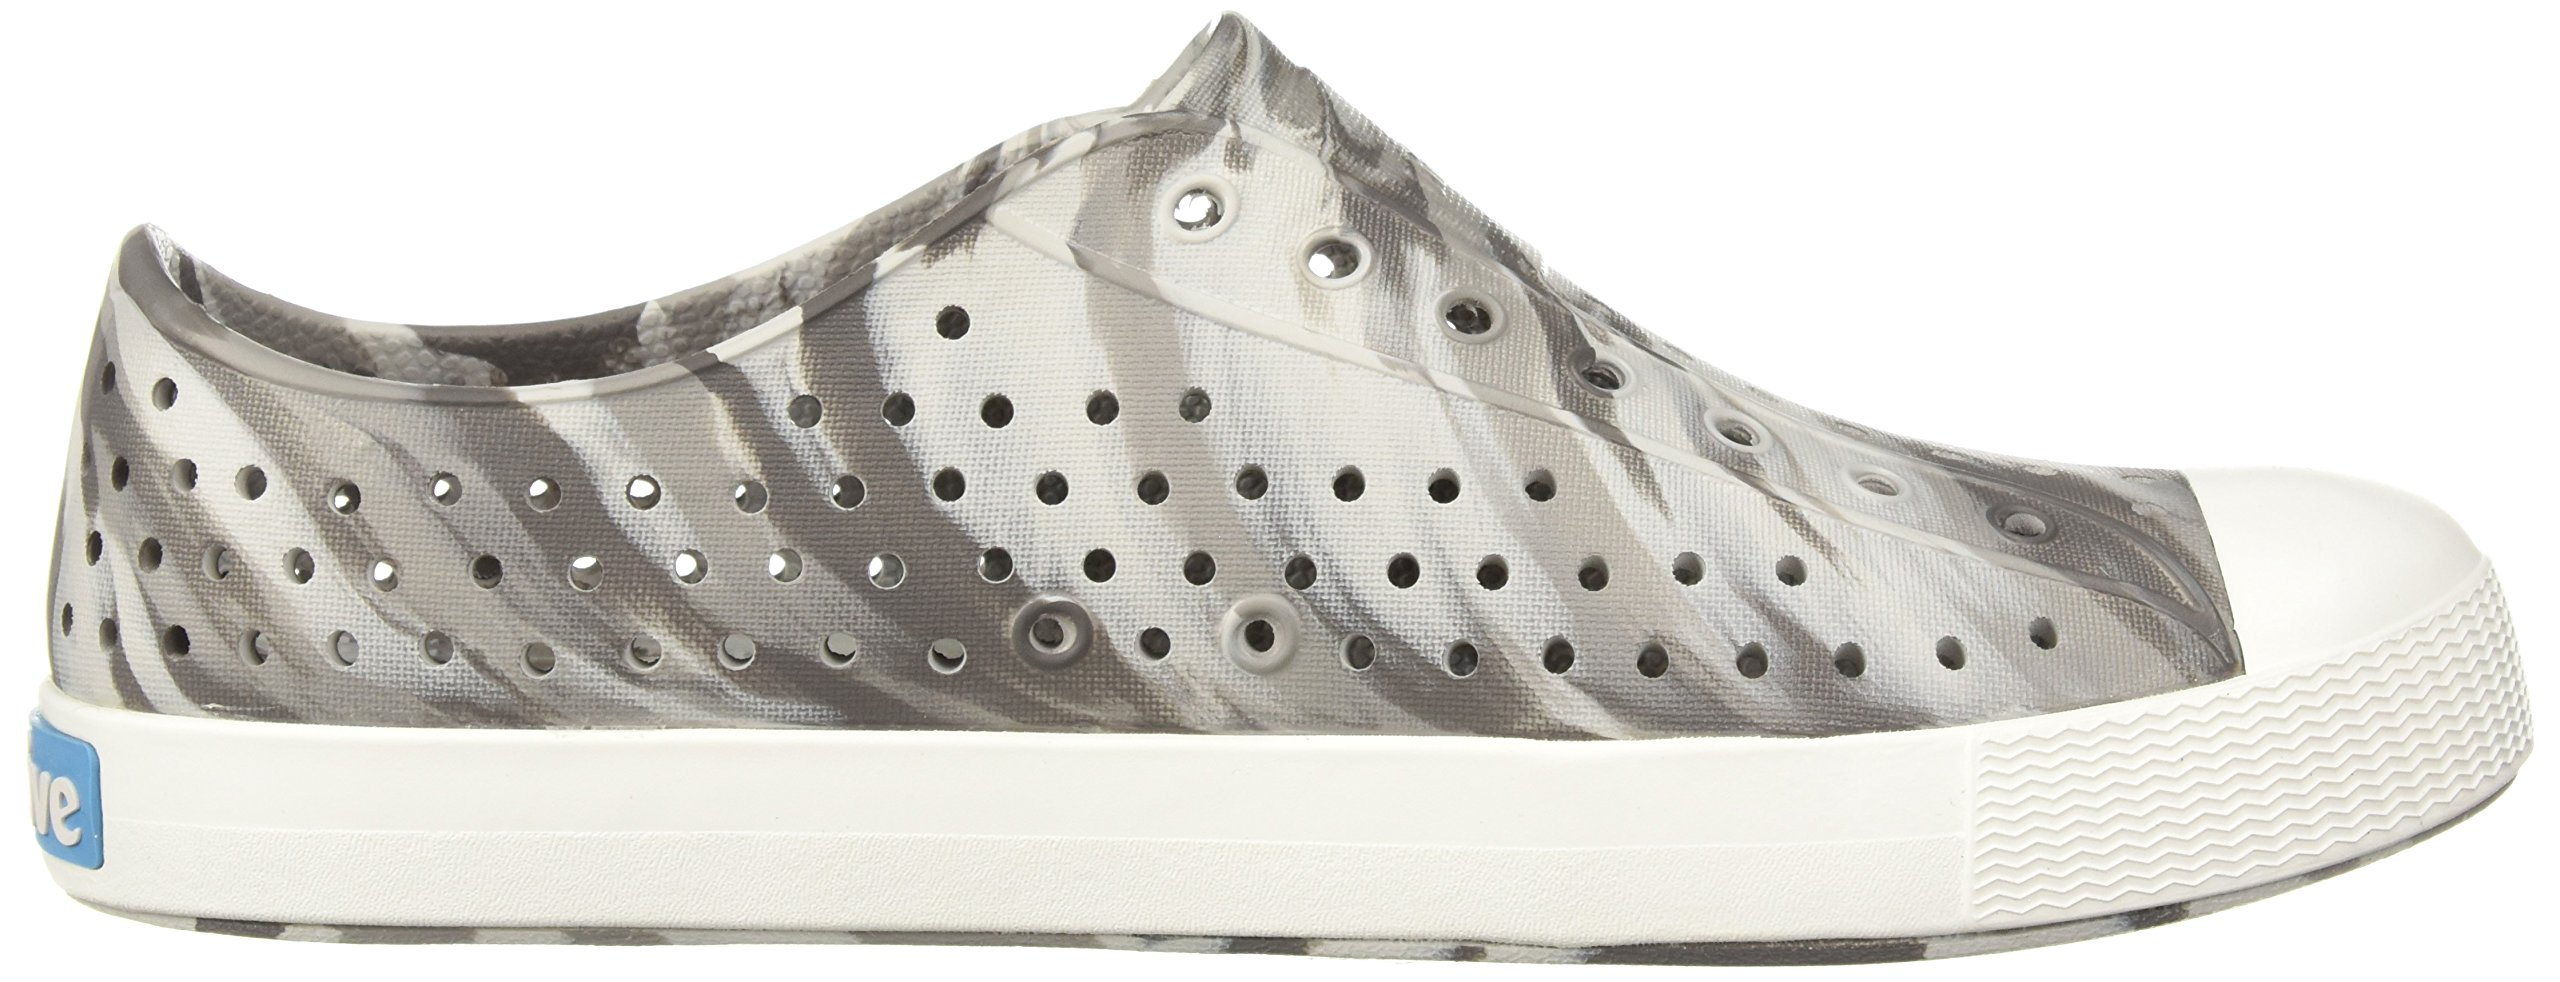 Native Kids Marbled Jefferson Water Proof Shoes, Dublin Grey/Shell White/Marbled, 5 Medium US Big Kid by Native Shoes (Image #7)